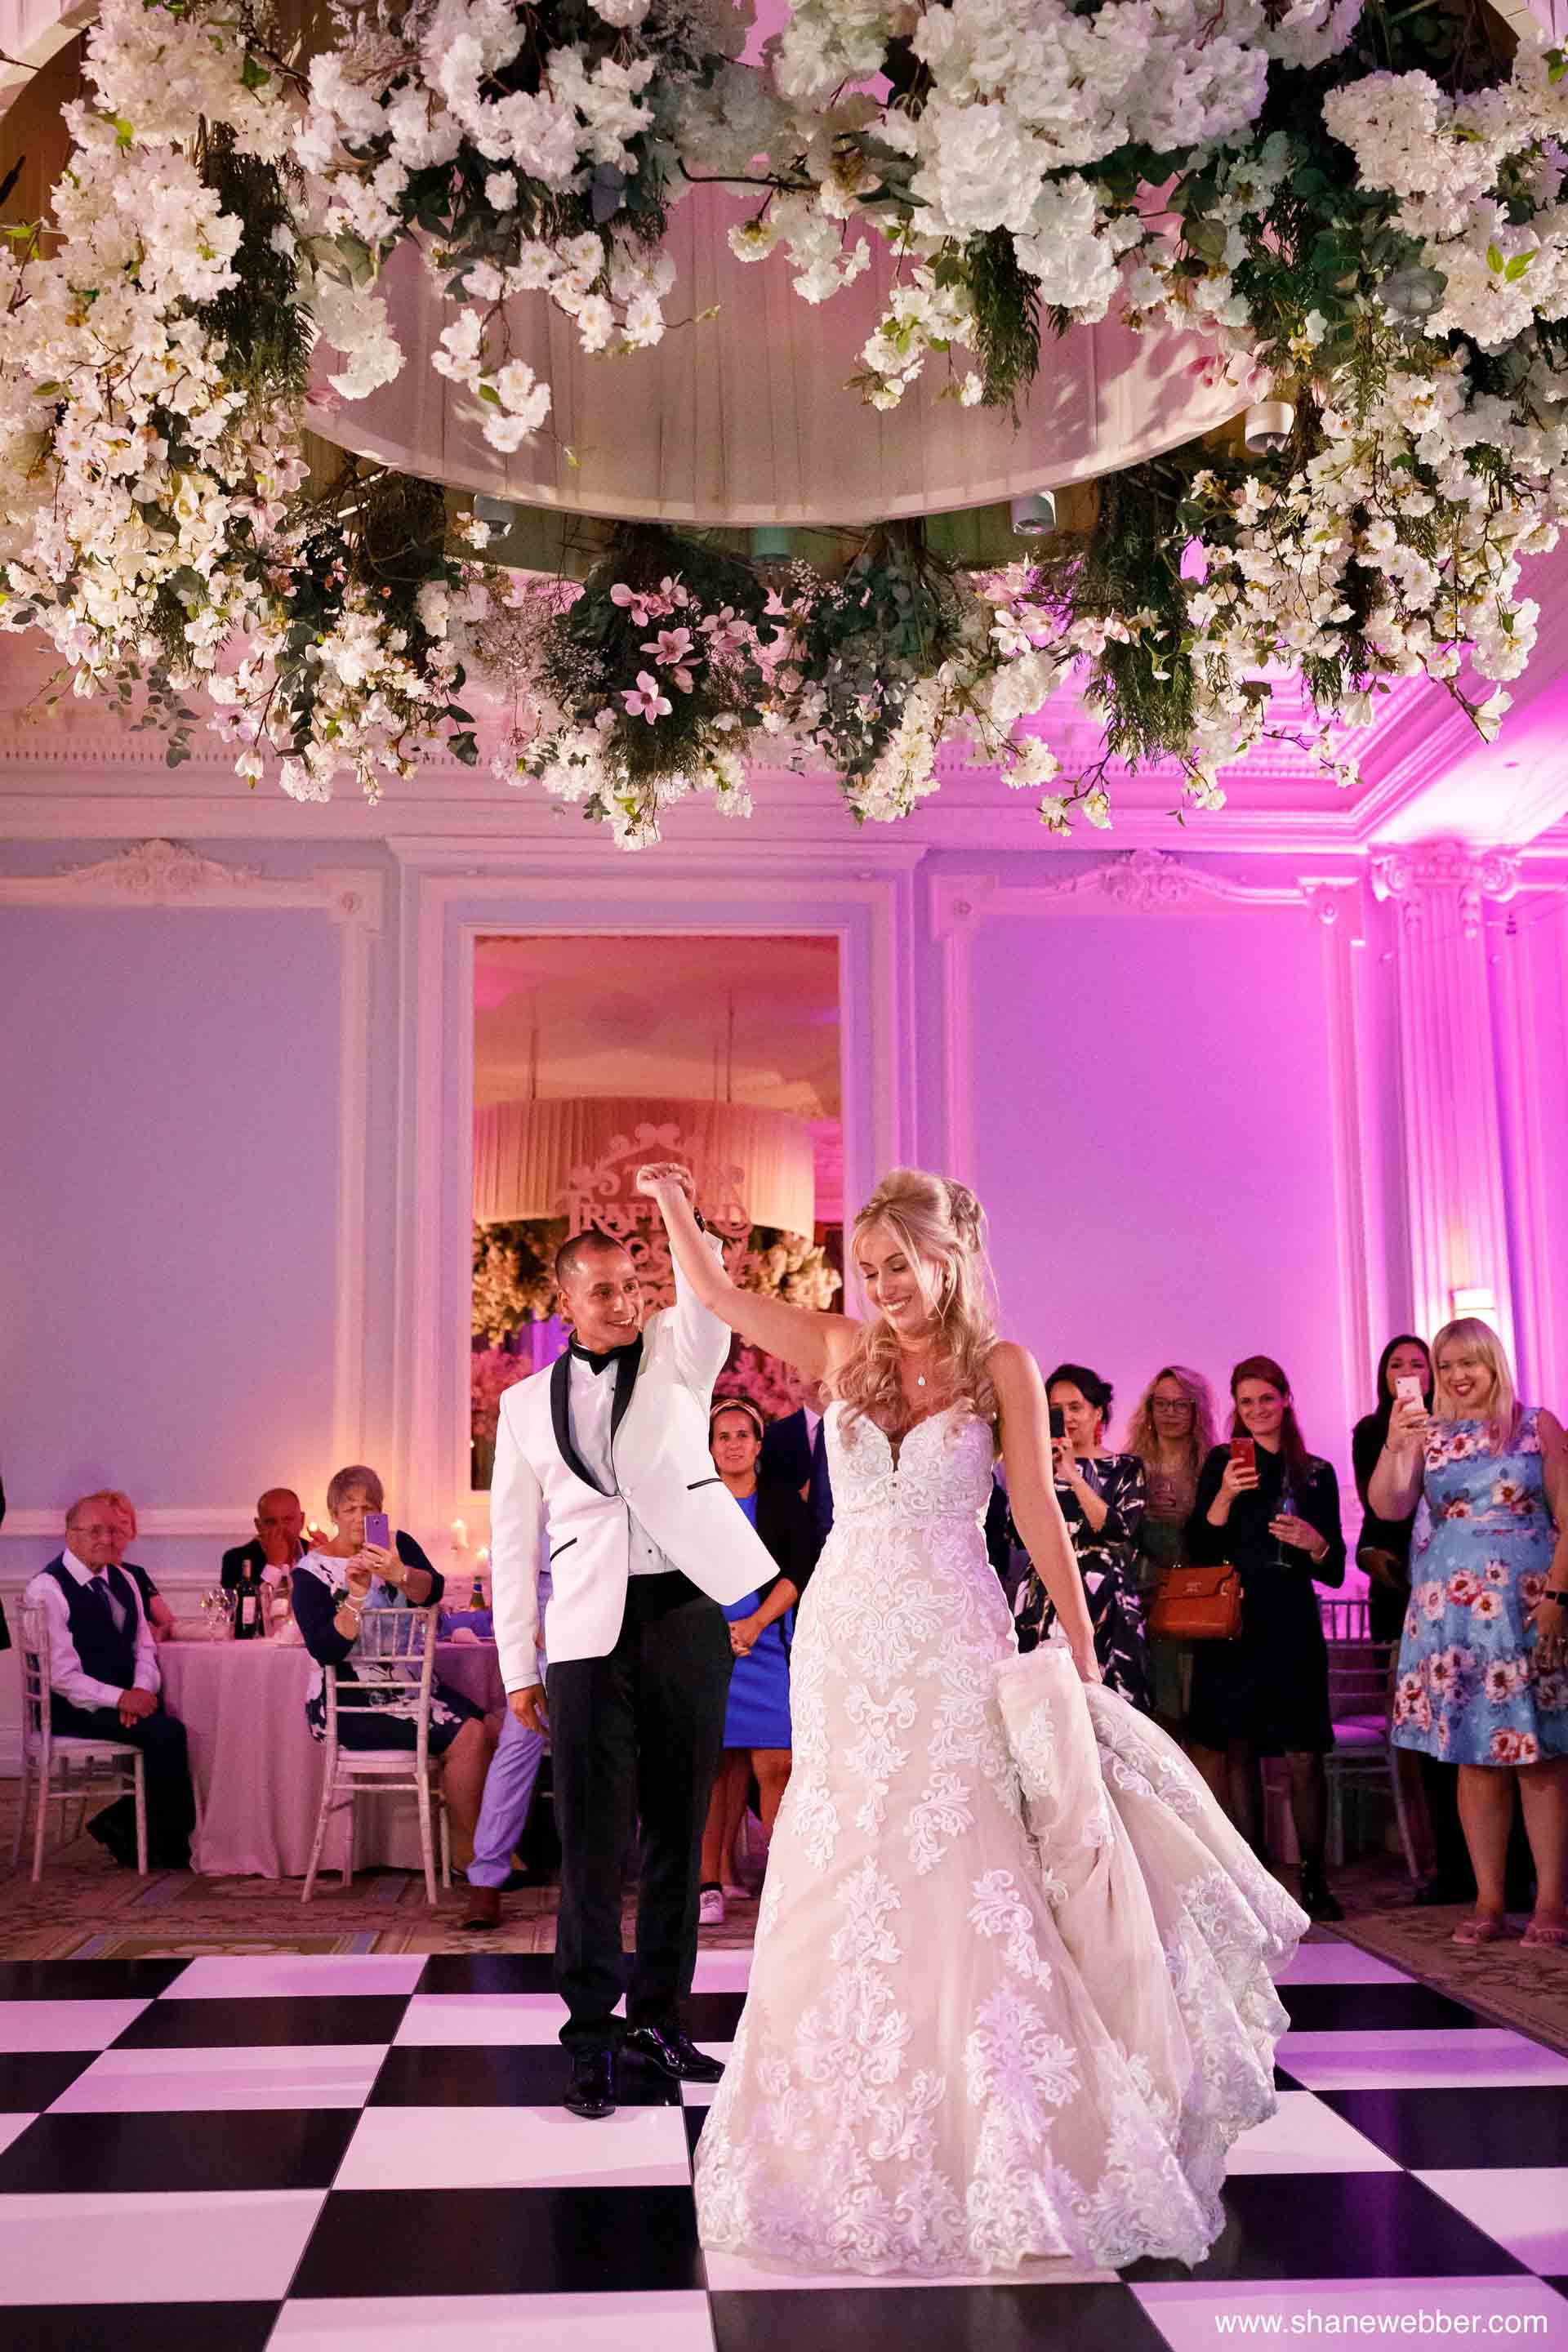 Couples first dance at The Midland Hotel in Manchester city centre